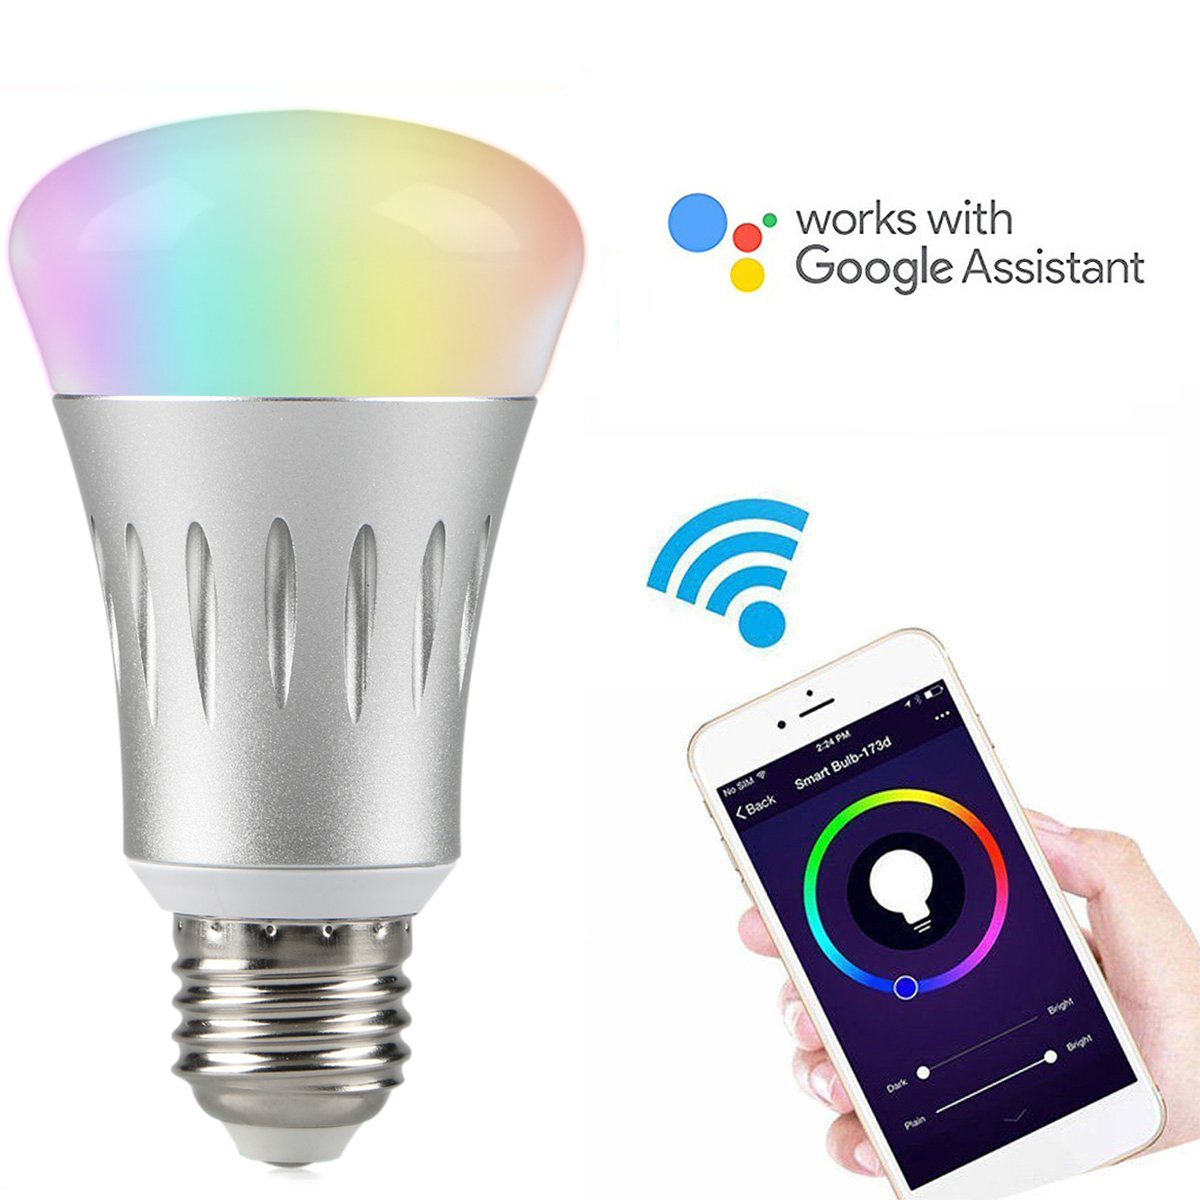 EEEKit 7W E27 Wireless WiFi Remote Control Smart Light Bulb RGB Lamp Compatible with  Google Home